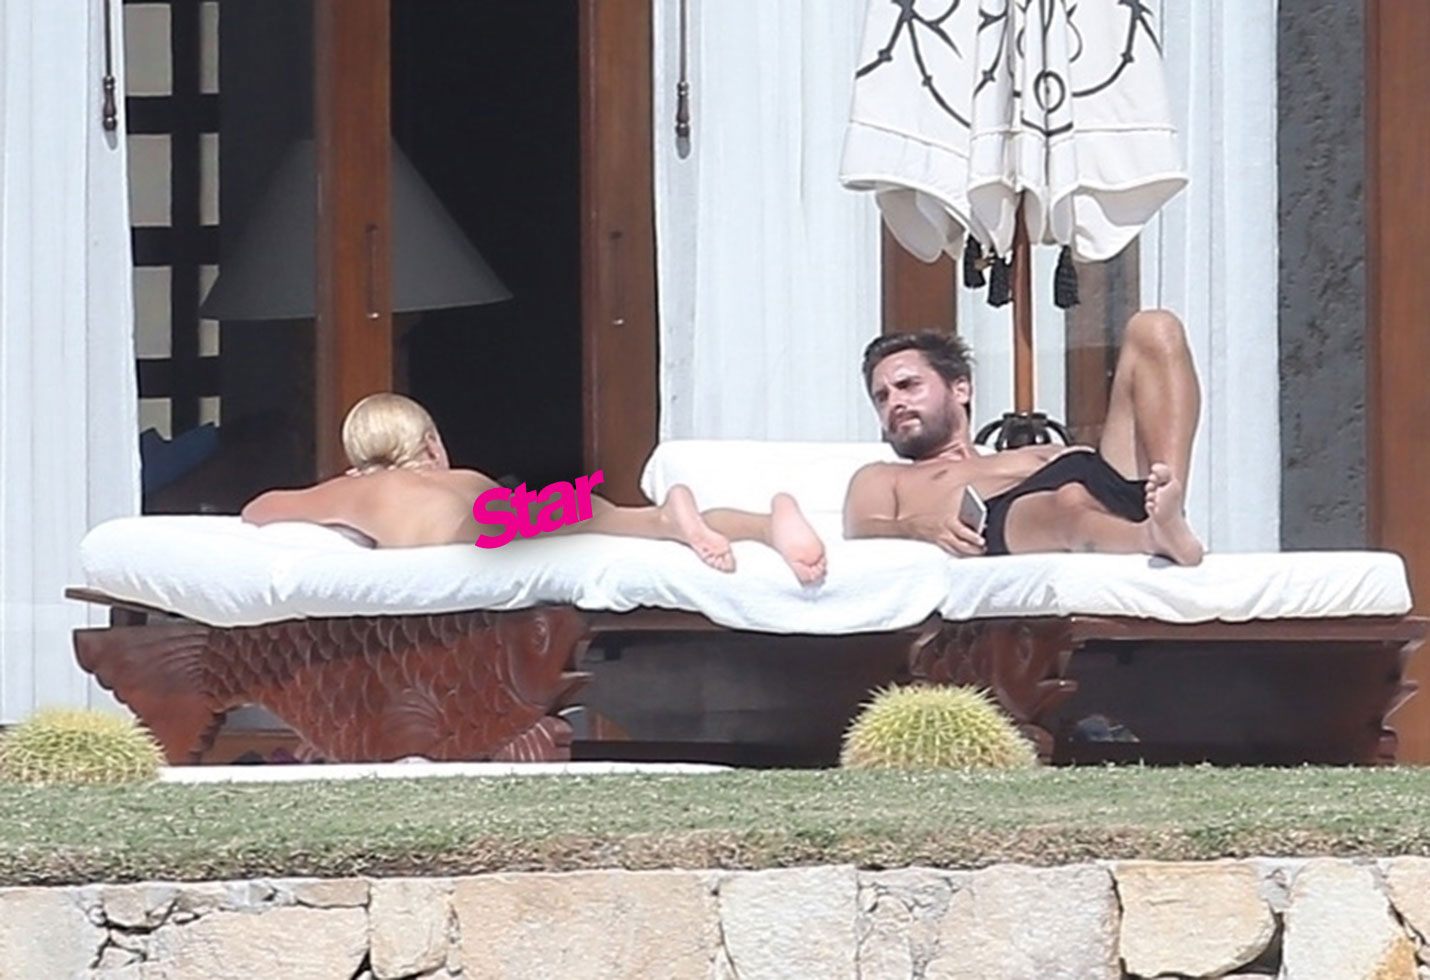 Sofia richie goes topless vacation scott disick pp star